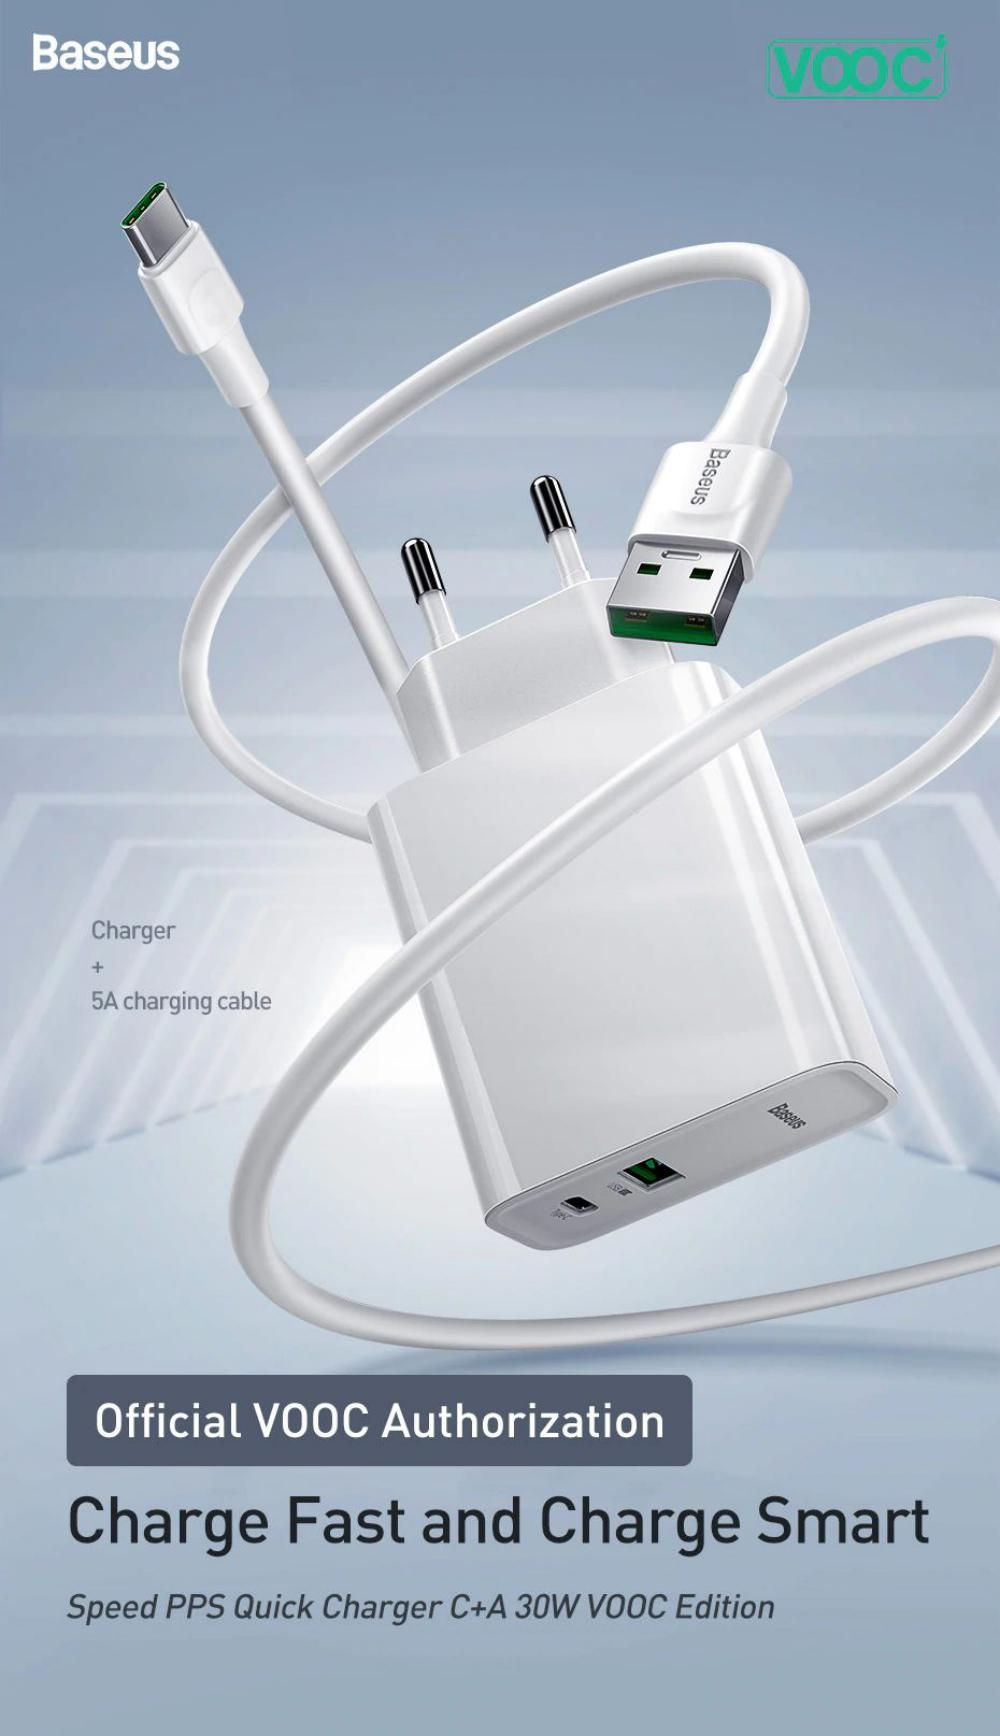 Baseus Speed Pps 30w Vooc Flash Charger (6)